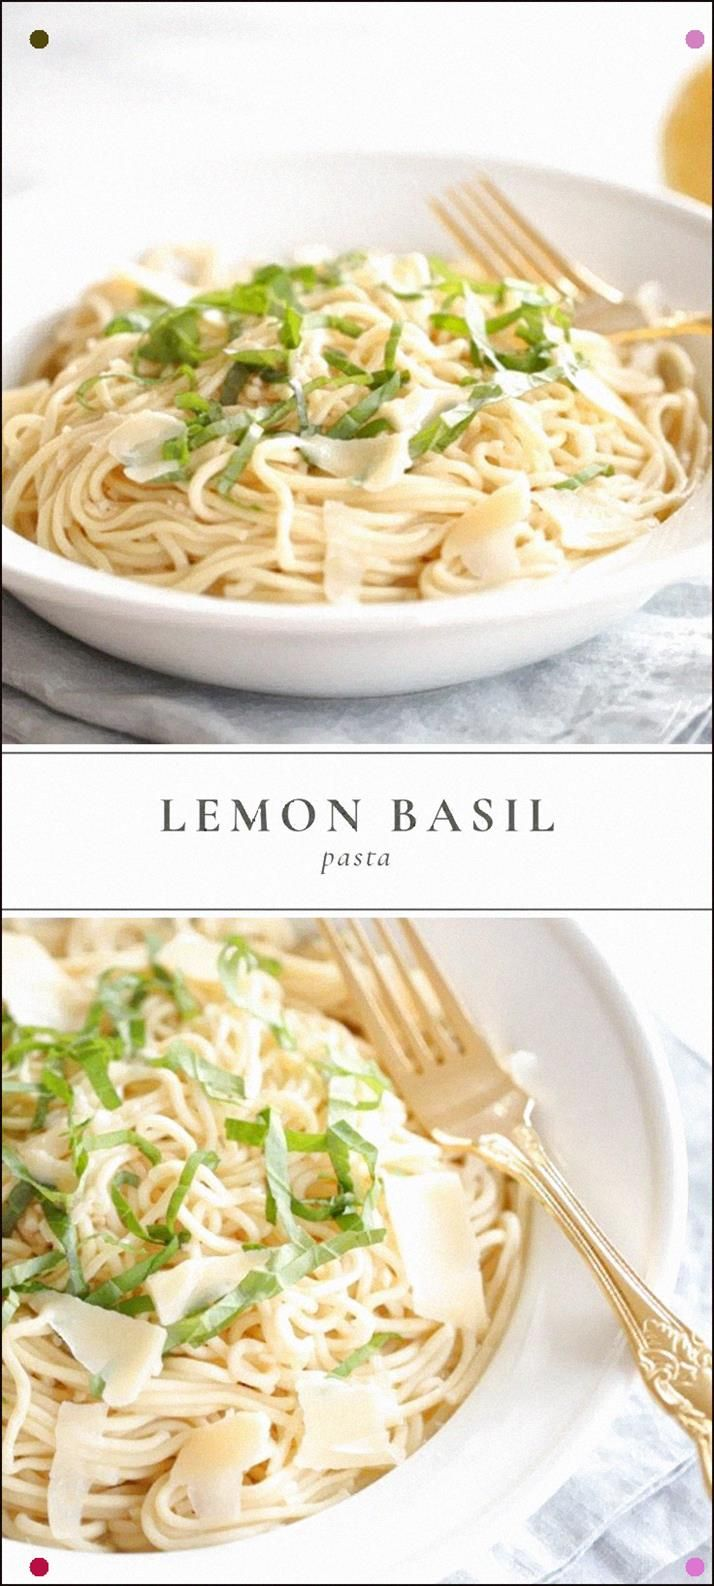 This Easy Basil Lemon Pasta Recipe Is Quick Enough For A Weeknight Dinner But Tastes Special For Date Night